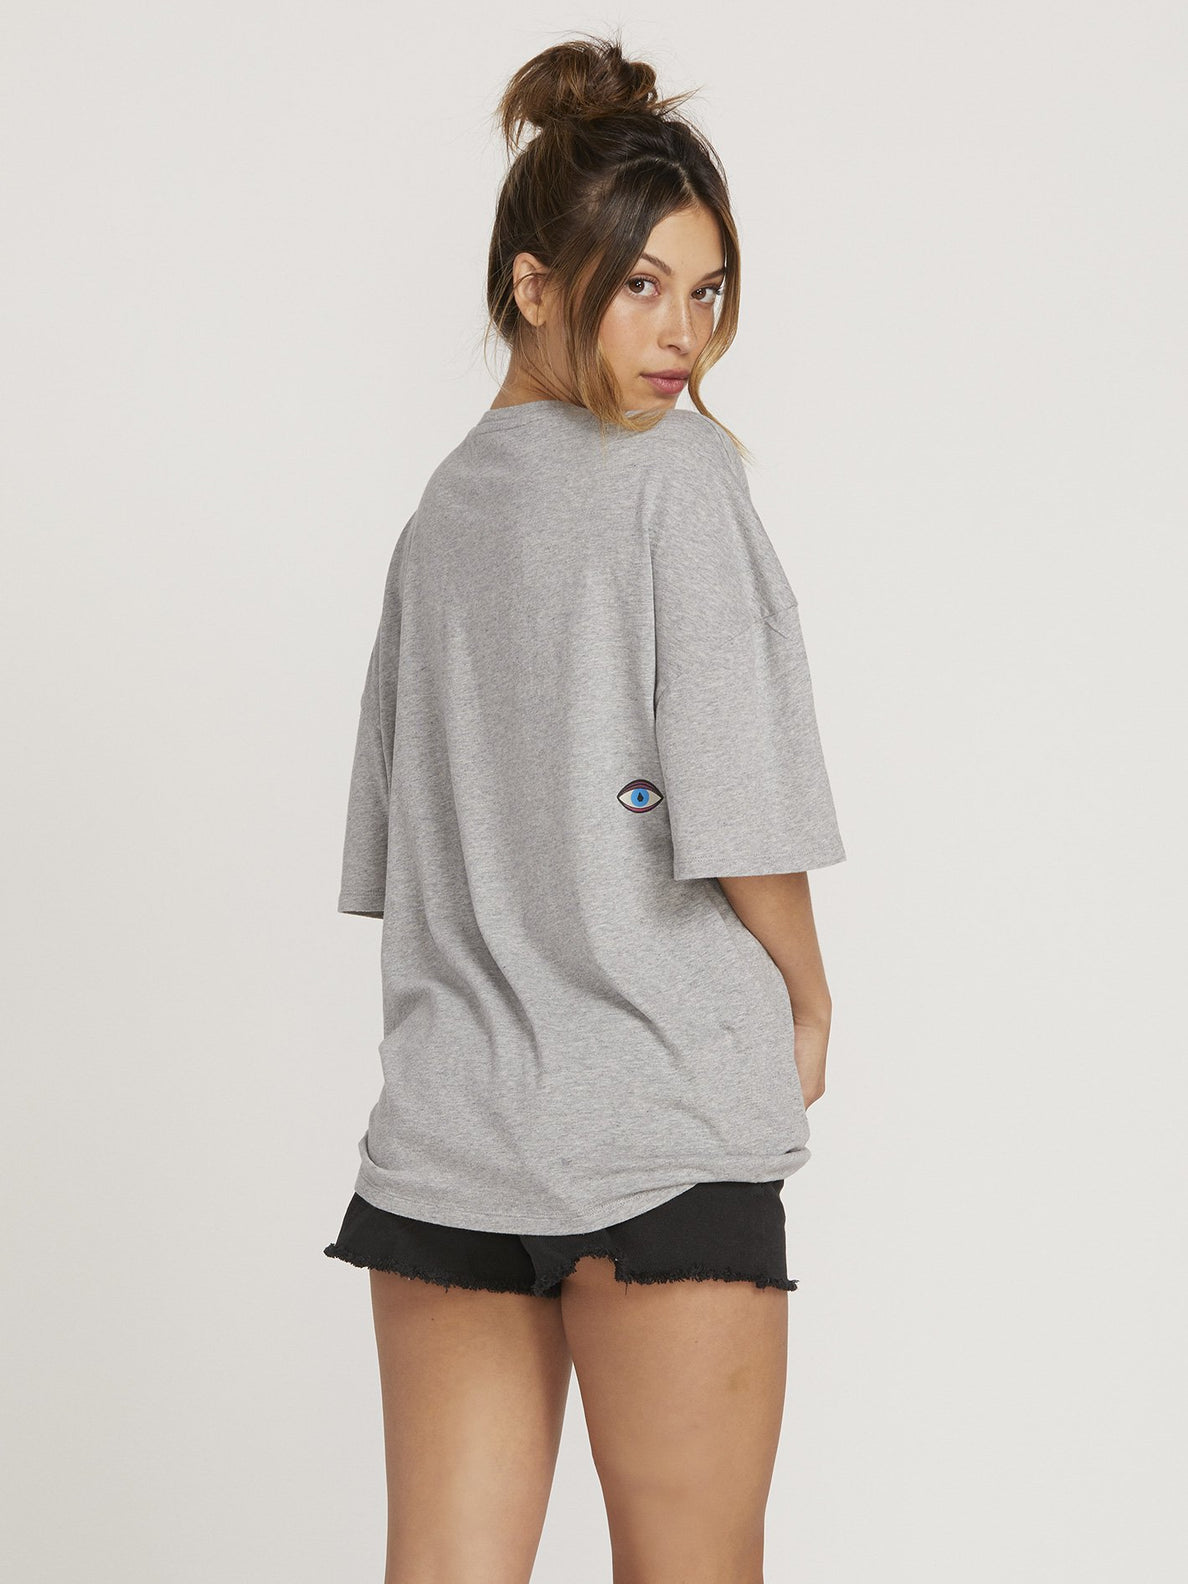 Stone Splif T-shirt  - Heather Grey